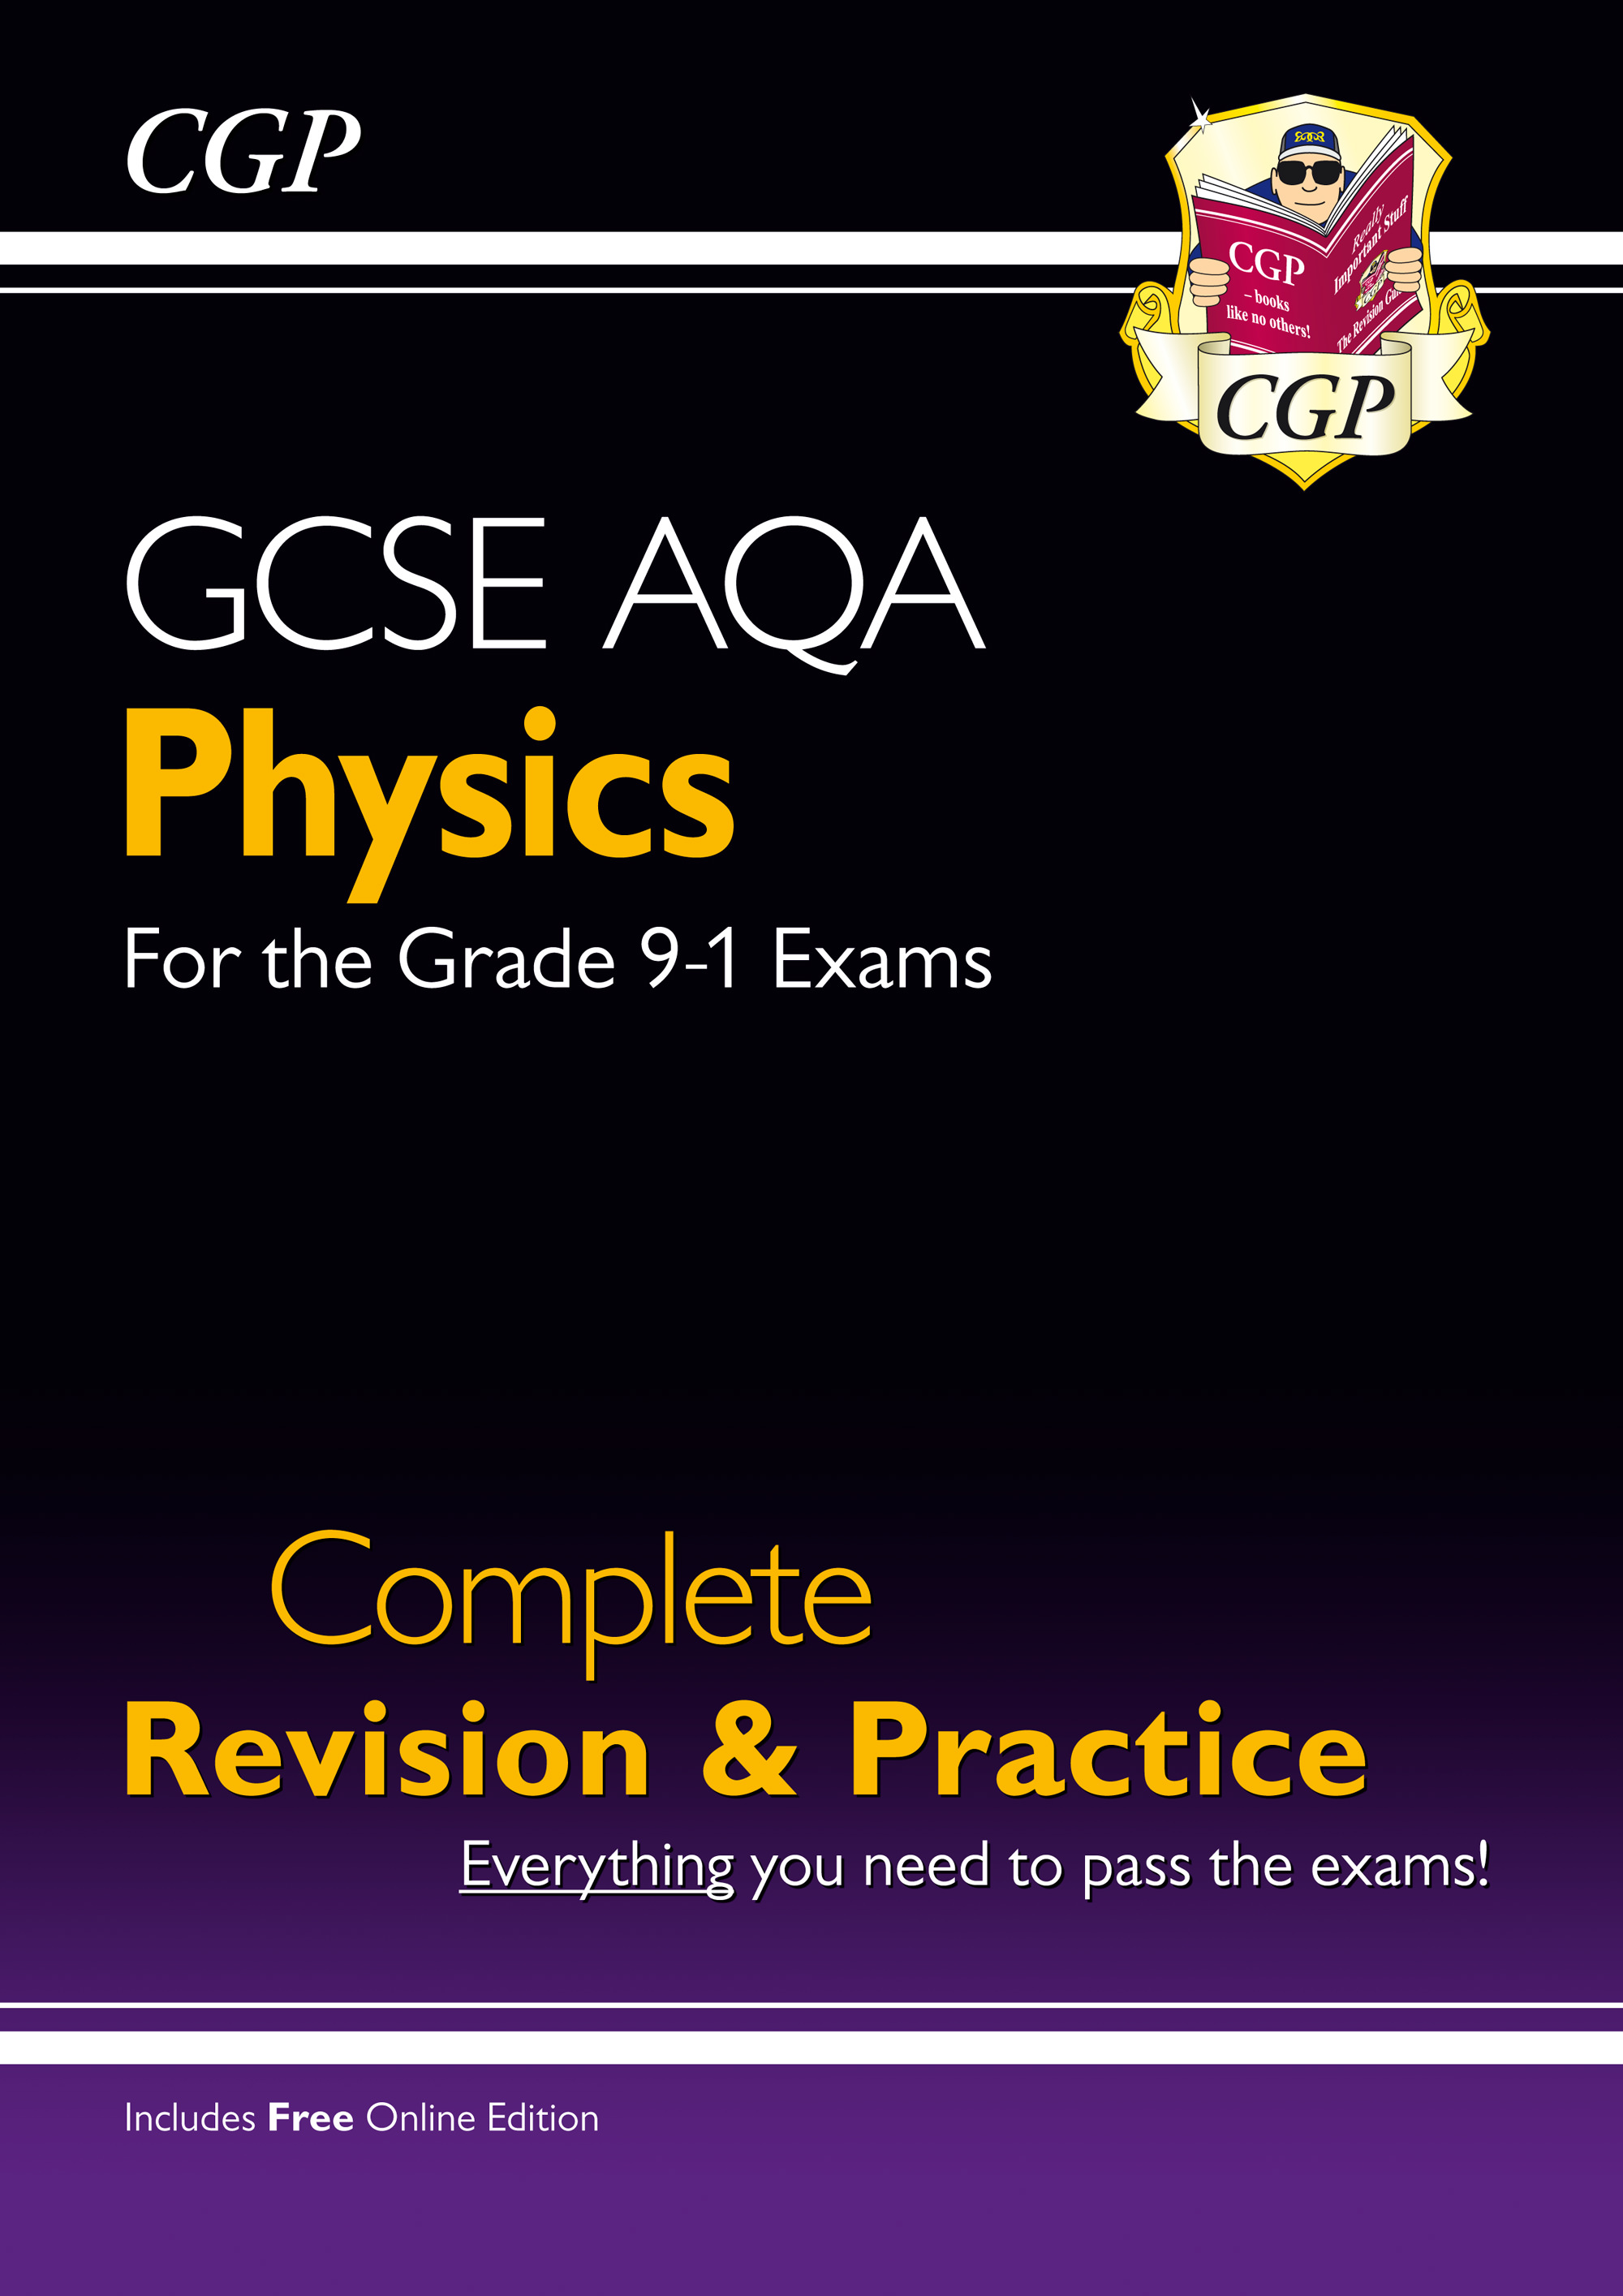 PAS47 - New Grade 9-1 GCSE Physics AQA Complete Revision & Practice with Online Edition